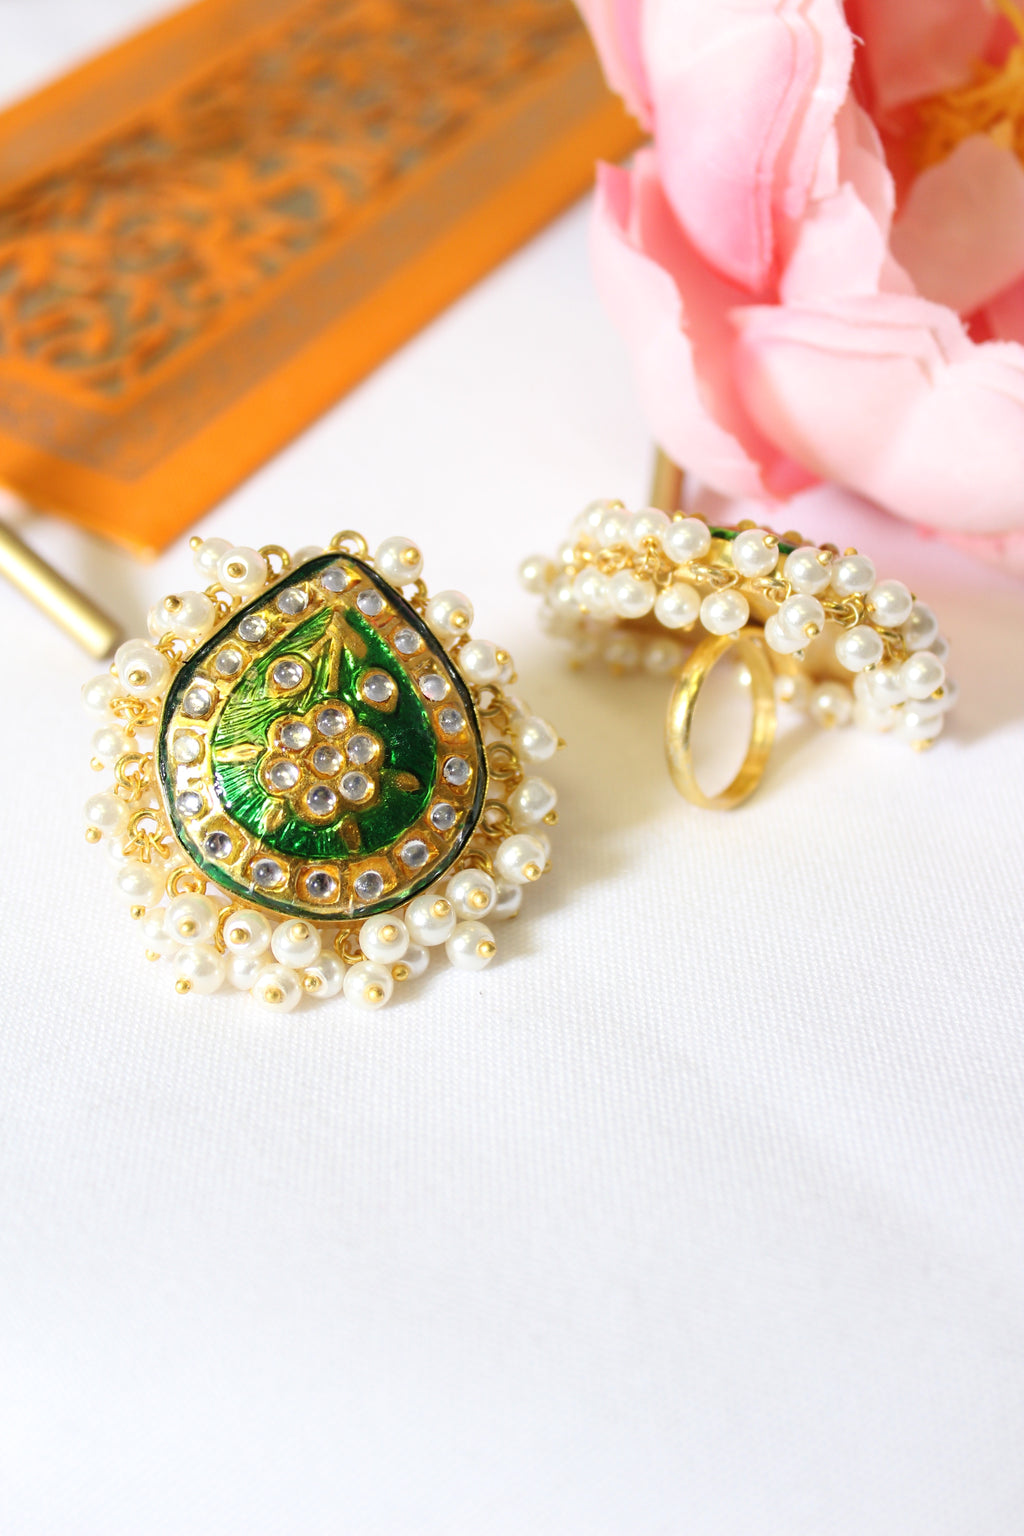 Emerald green kundan meenakari ring lined with pearls